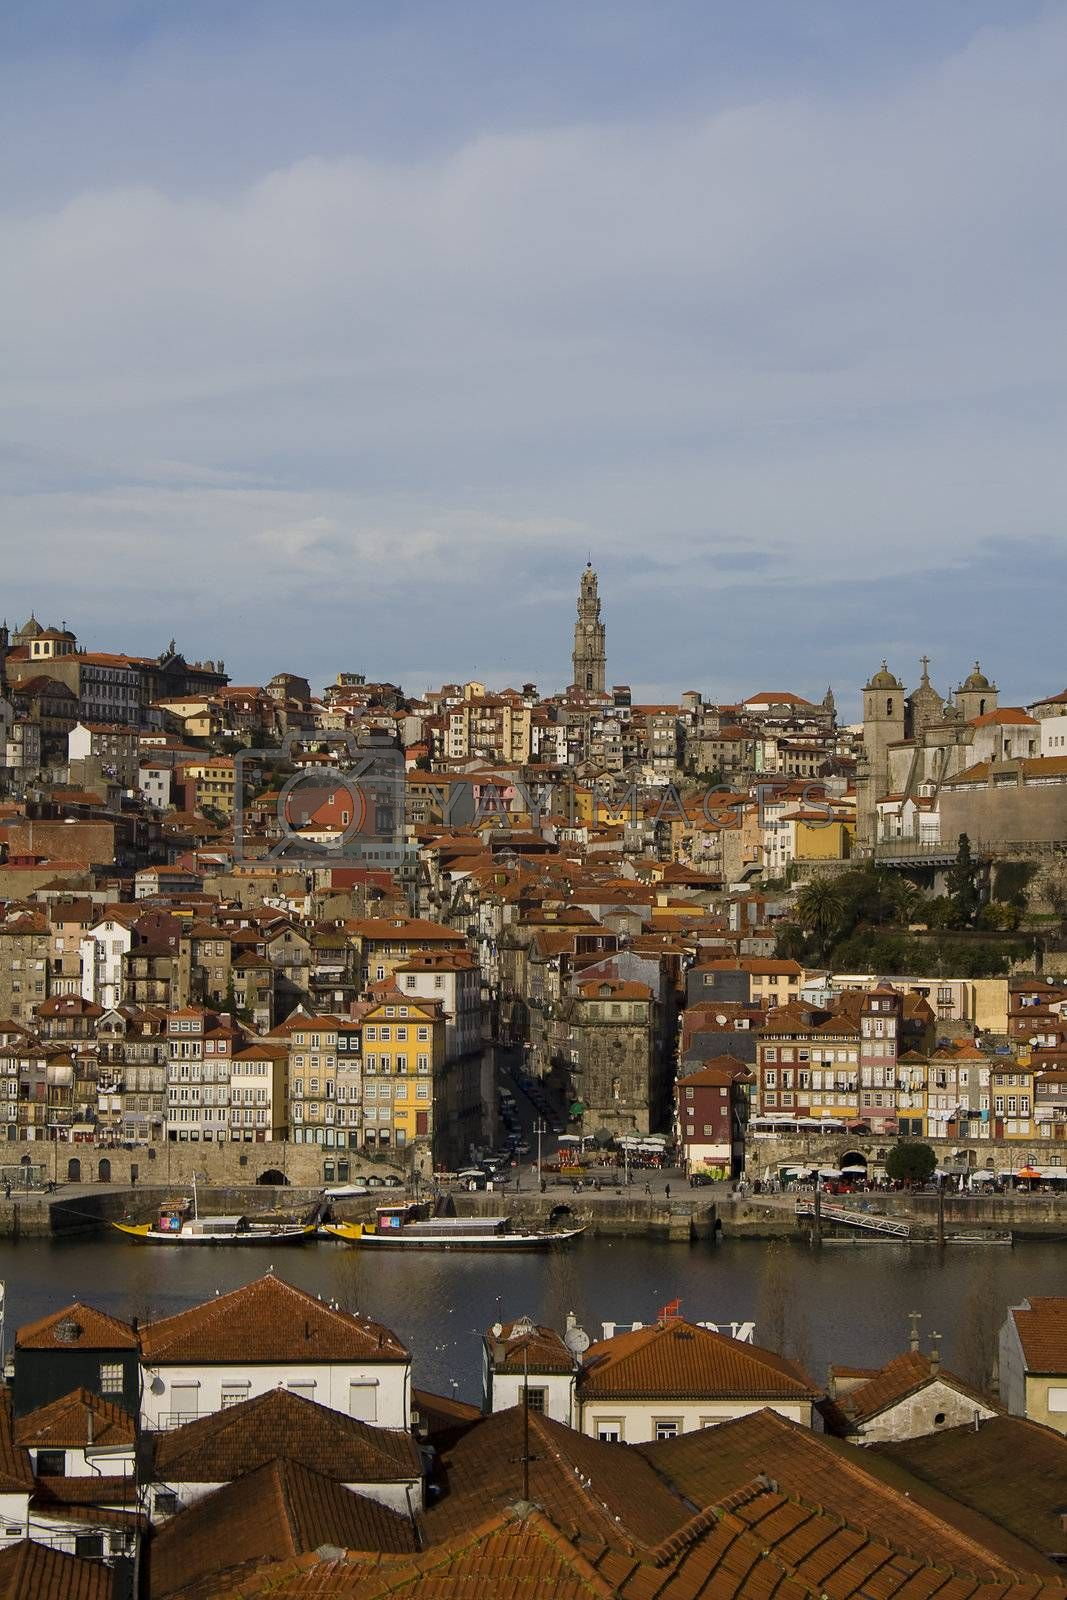 View from Oporto city in Portugal